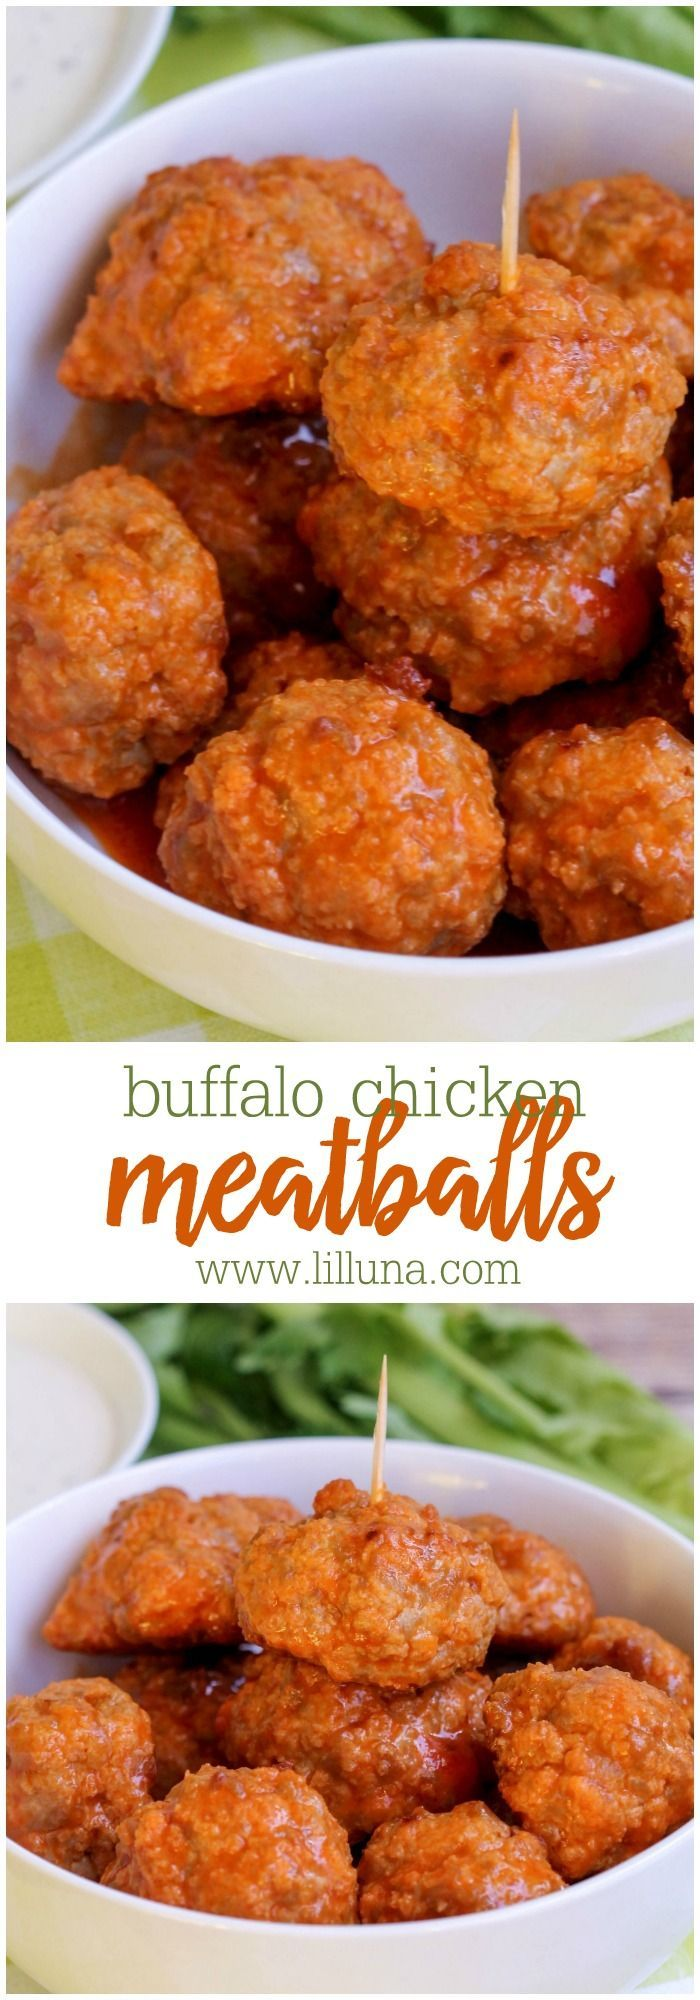 Buffalo Chicken Meatballs - Lil' Luna